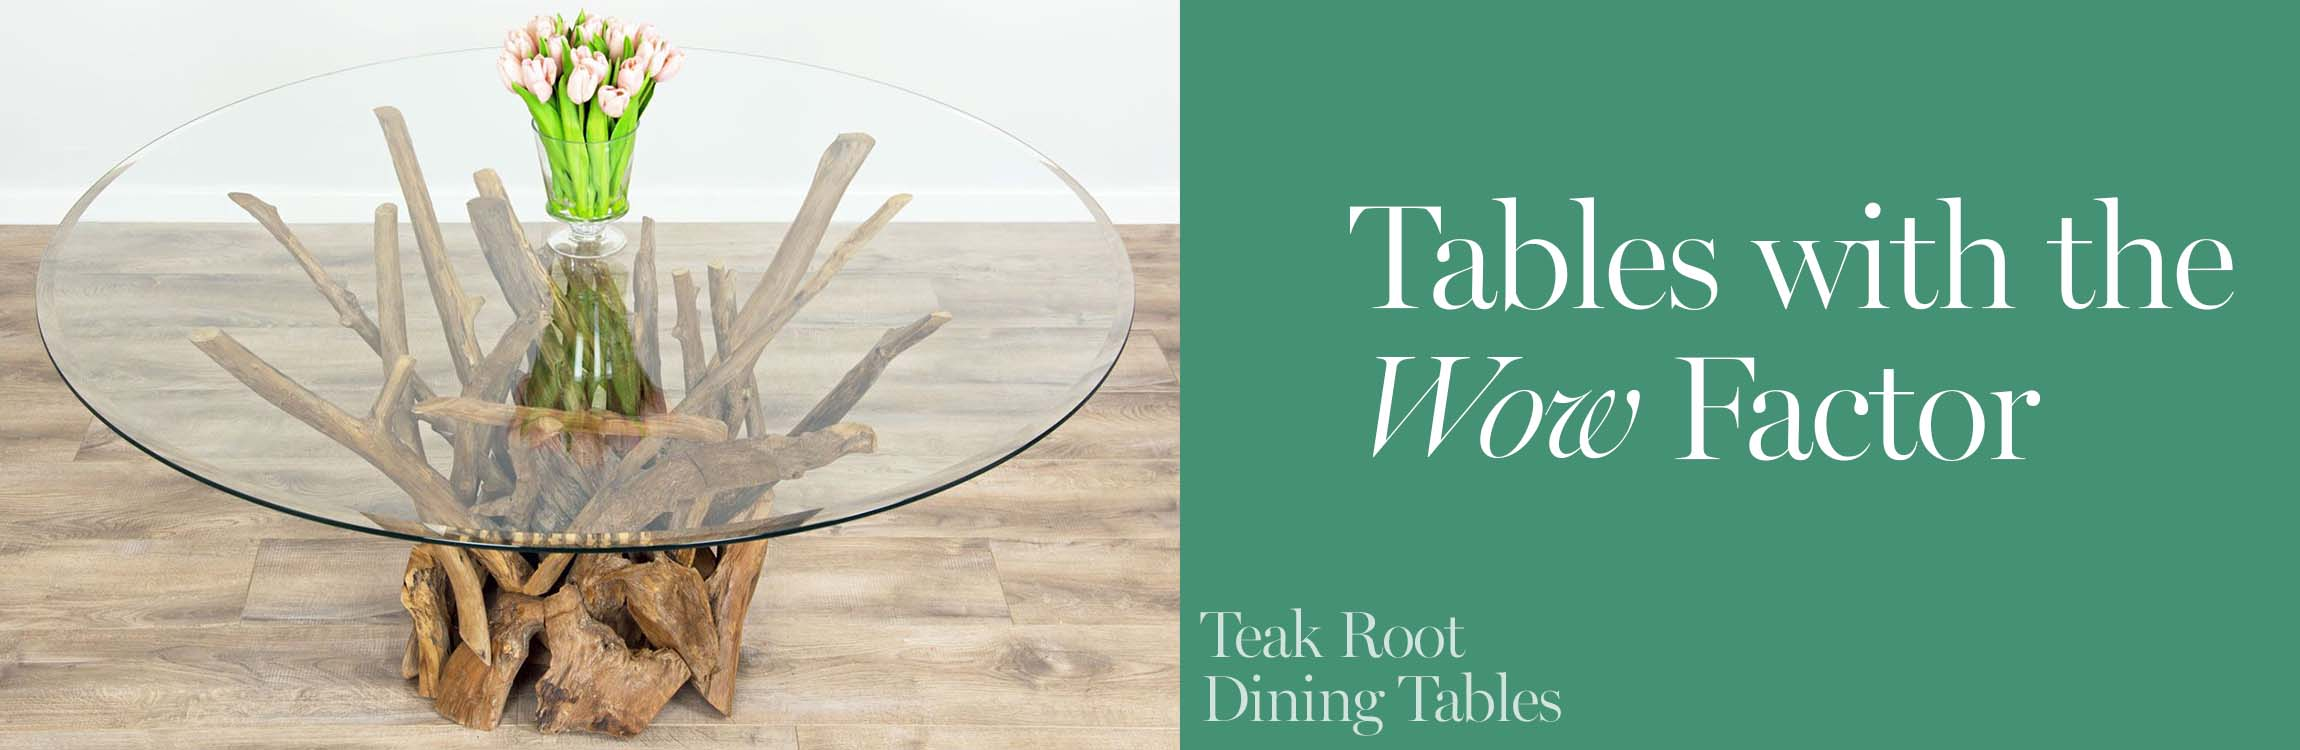 Teak Root Dining Tables